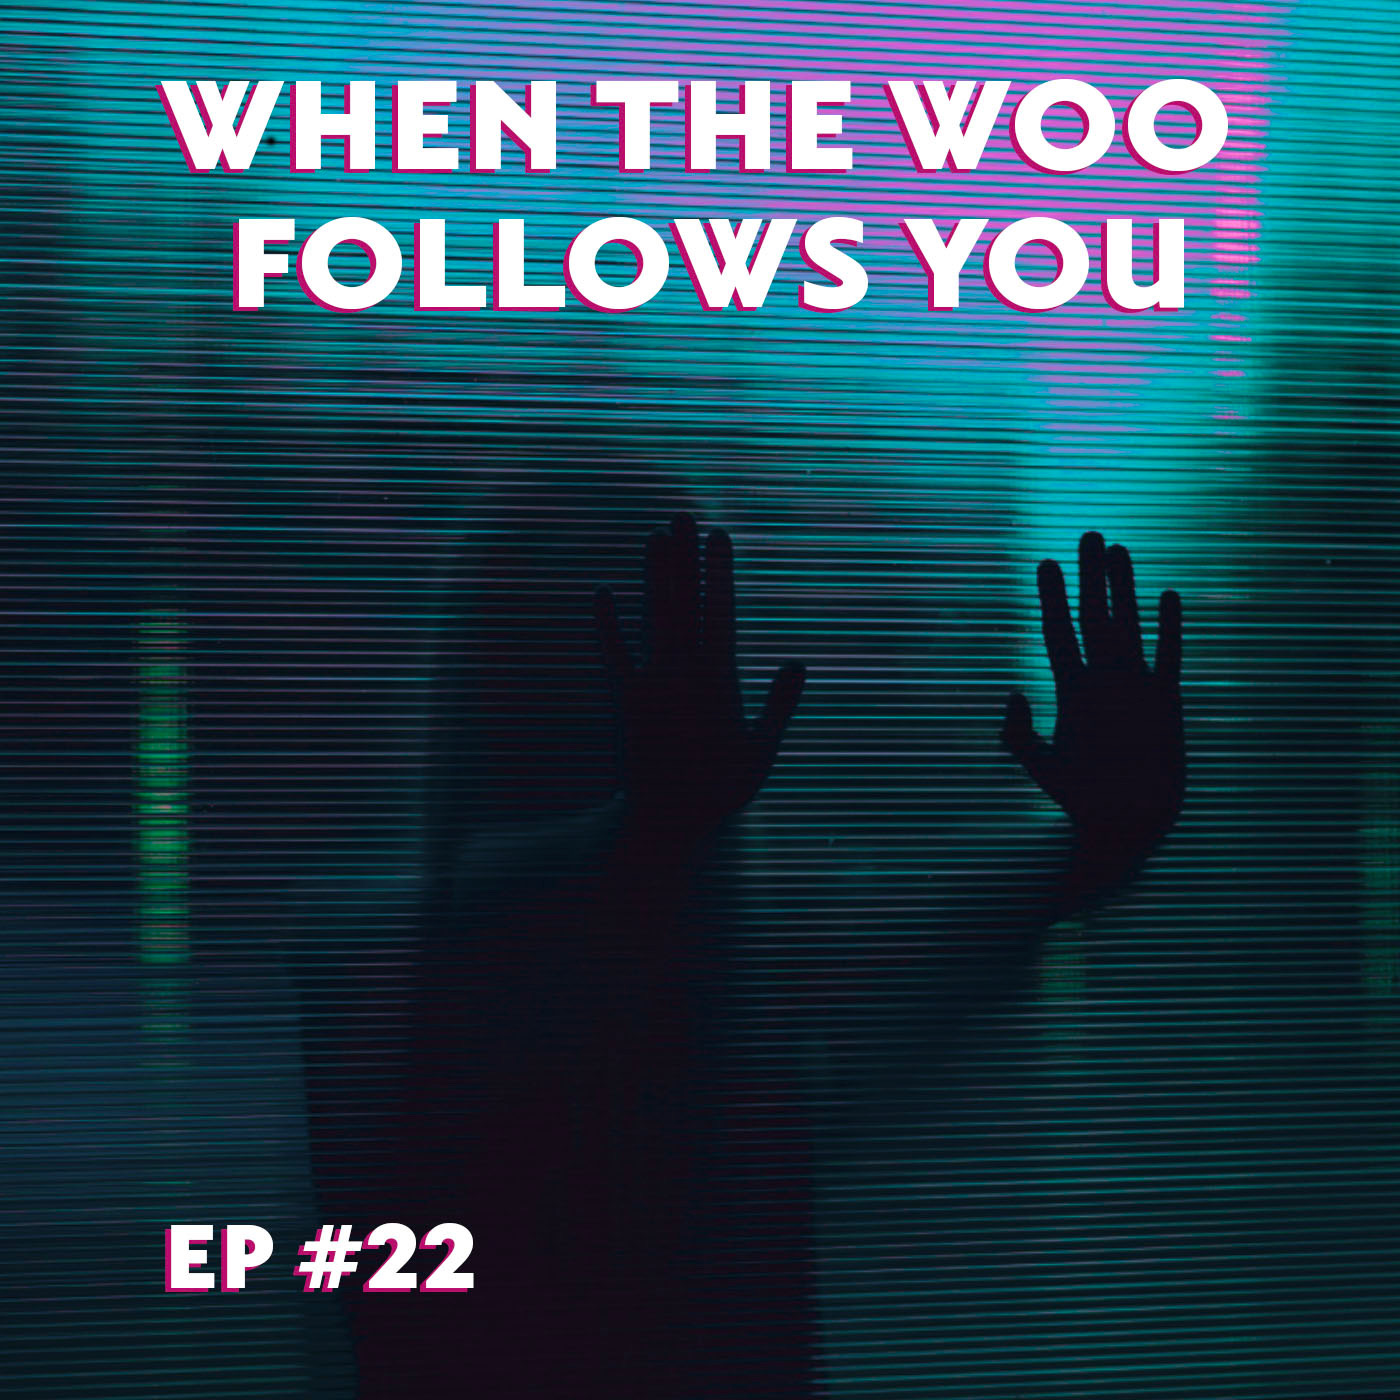 Artwork for podcast Follow the Woo